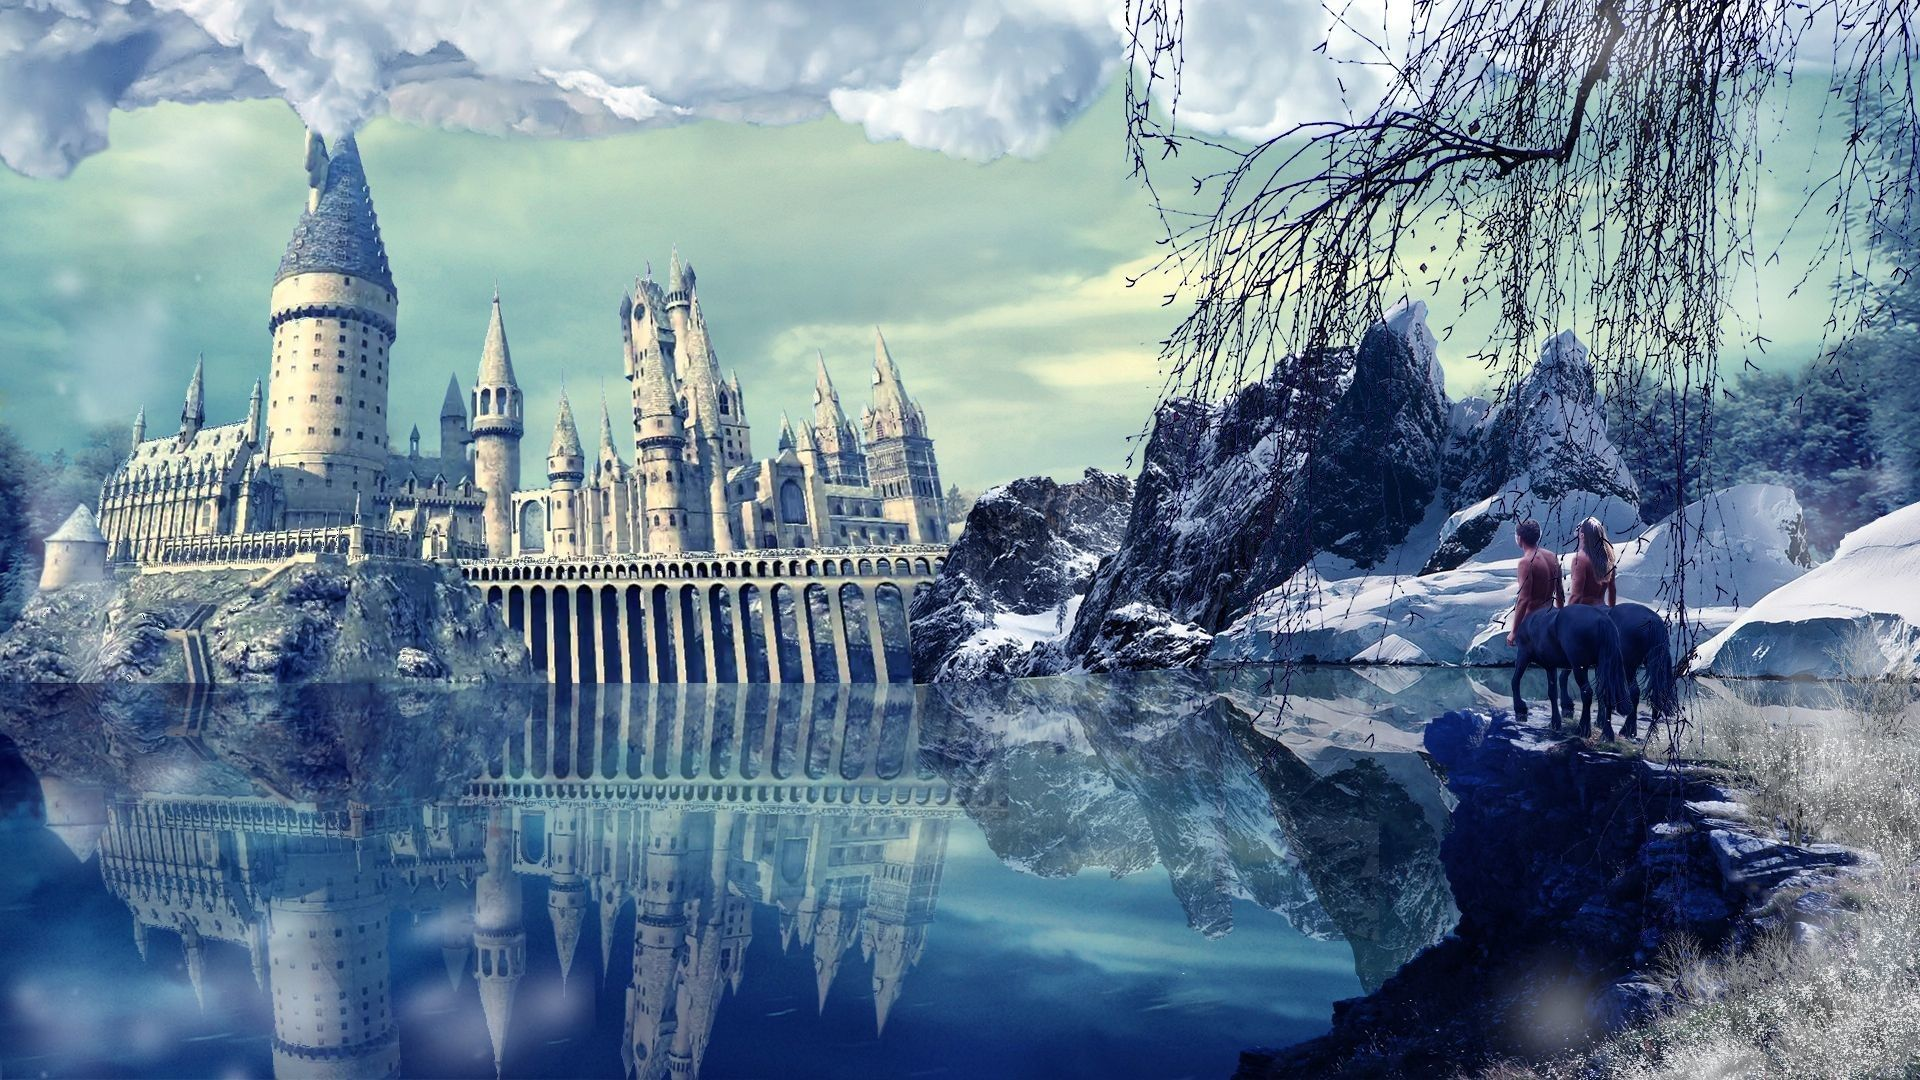 Hogwarts Winter Wallpapers Top Free Hogwarts Winter Backgrounds Wallpaperaccess